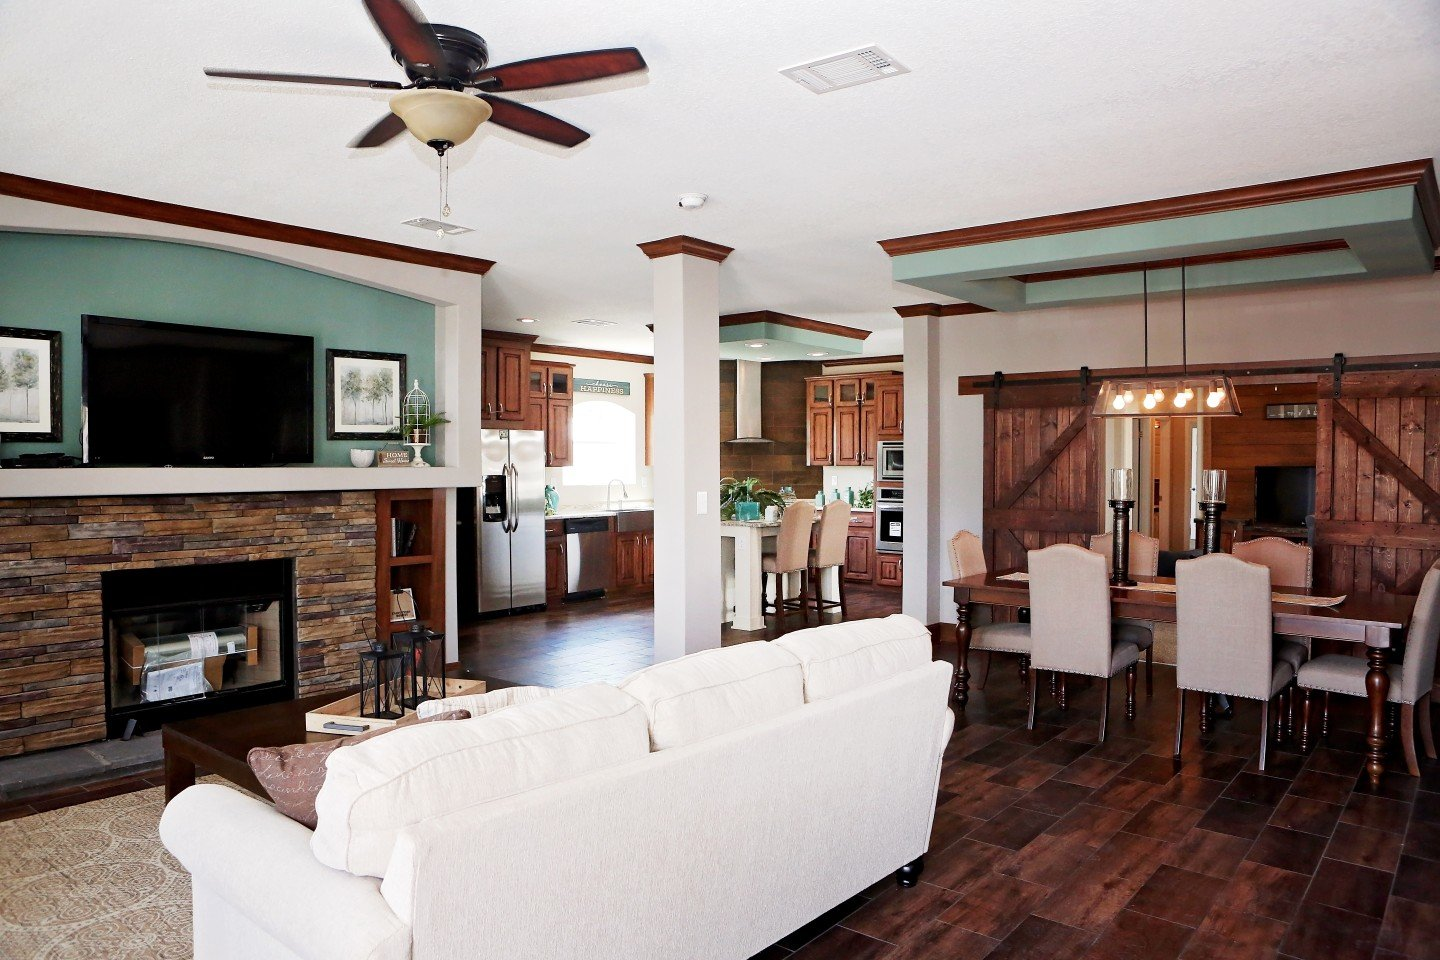 Home - Ironwood Homes Live Oak Mobile Home Movers on miami mobile homes, interior double wide mobile homes, 2014 model mobile homes, twin lakes mobile homes, river birch mobile homes,